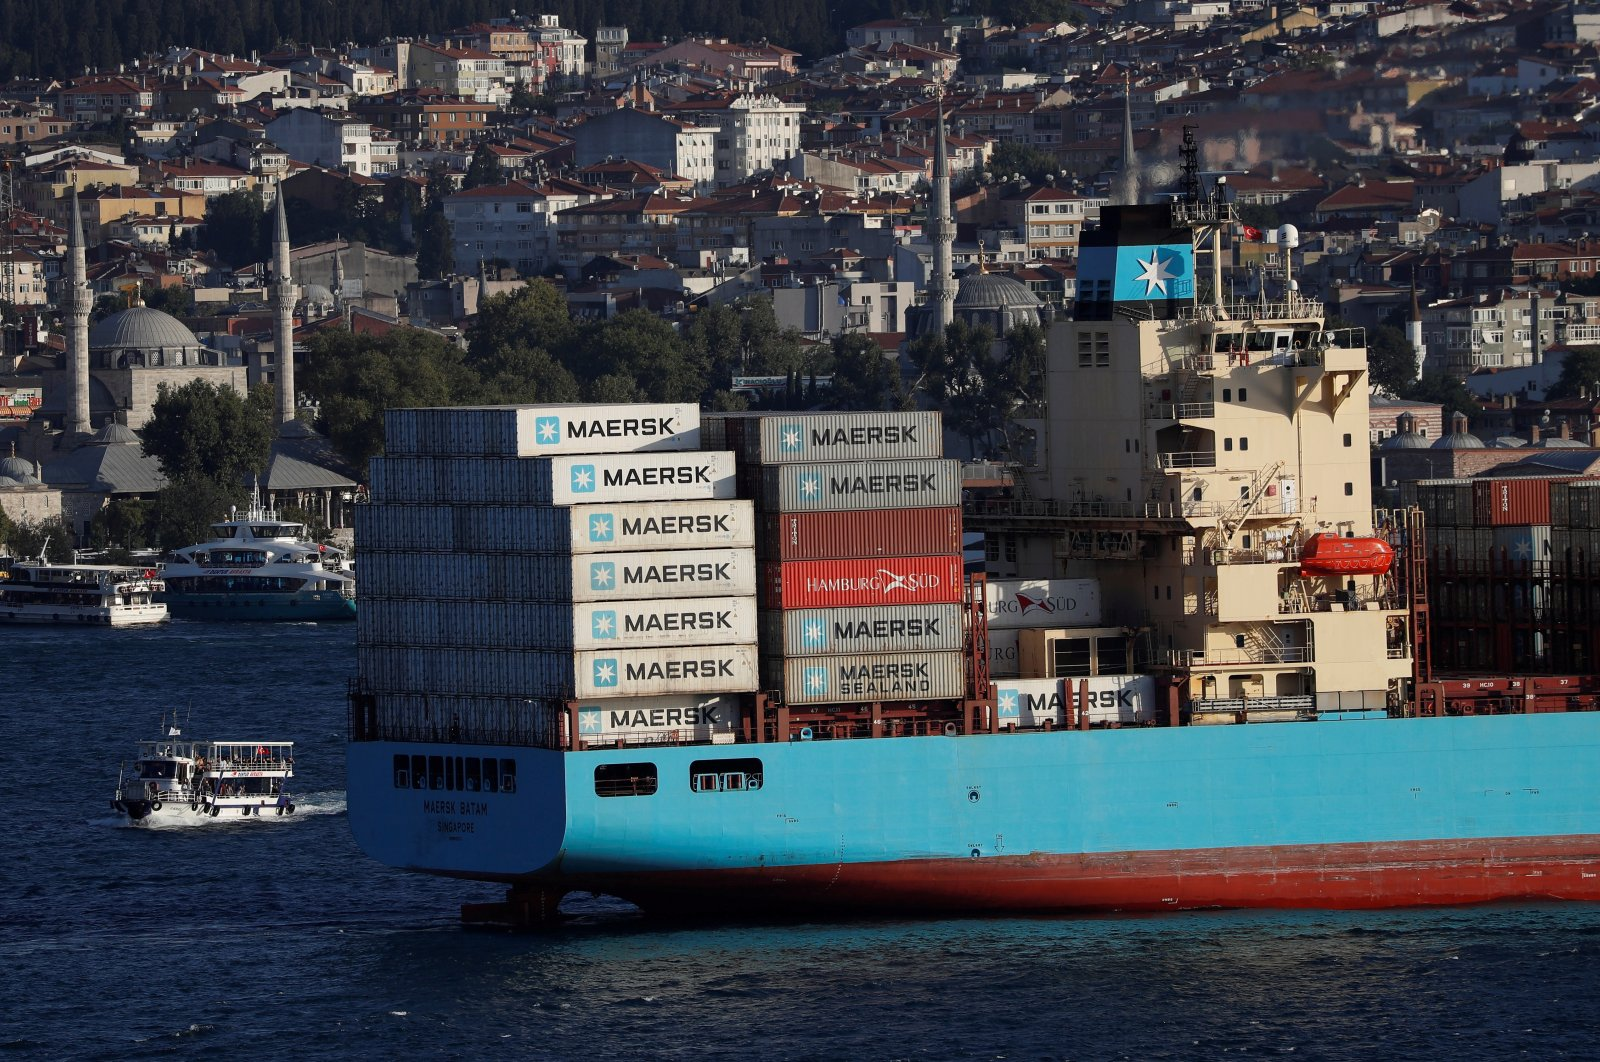 A container ship sails in the Bosporus, on its way to the Mediterranean Sea, Istanbul, Turkey, Aug. 10, 2018. (Reuters Photo)